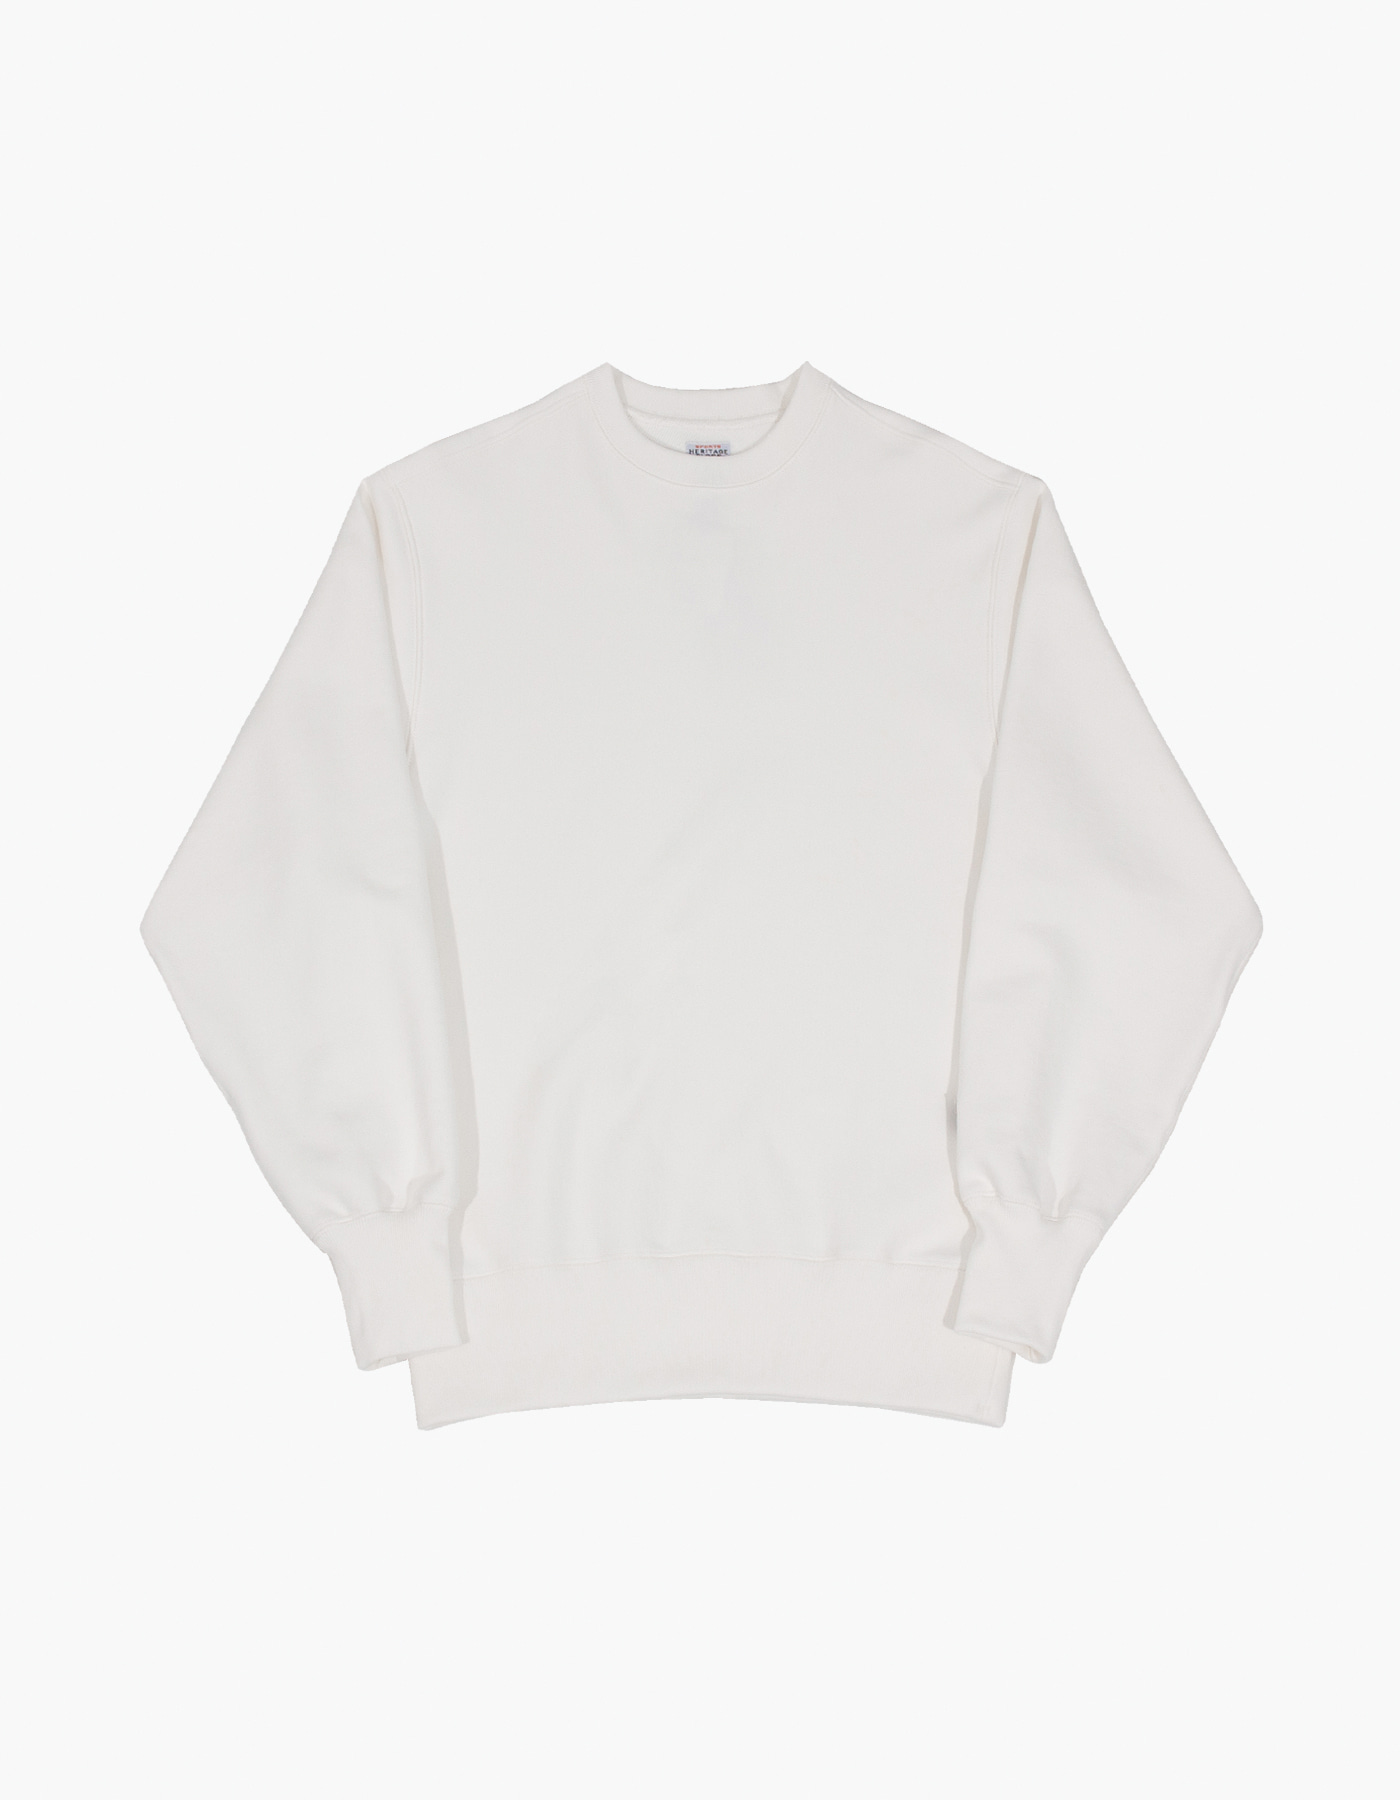 ACS CREWNECK / WHITE